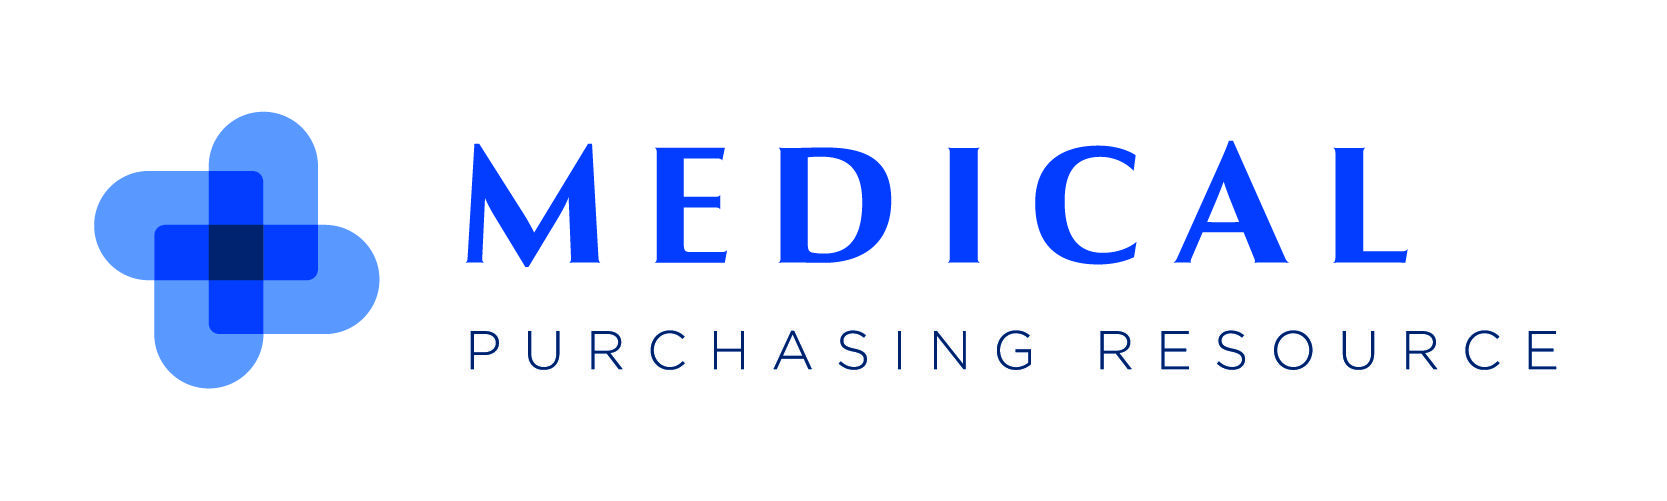 Medical Purchasing Resource, LLC